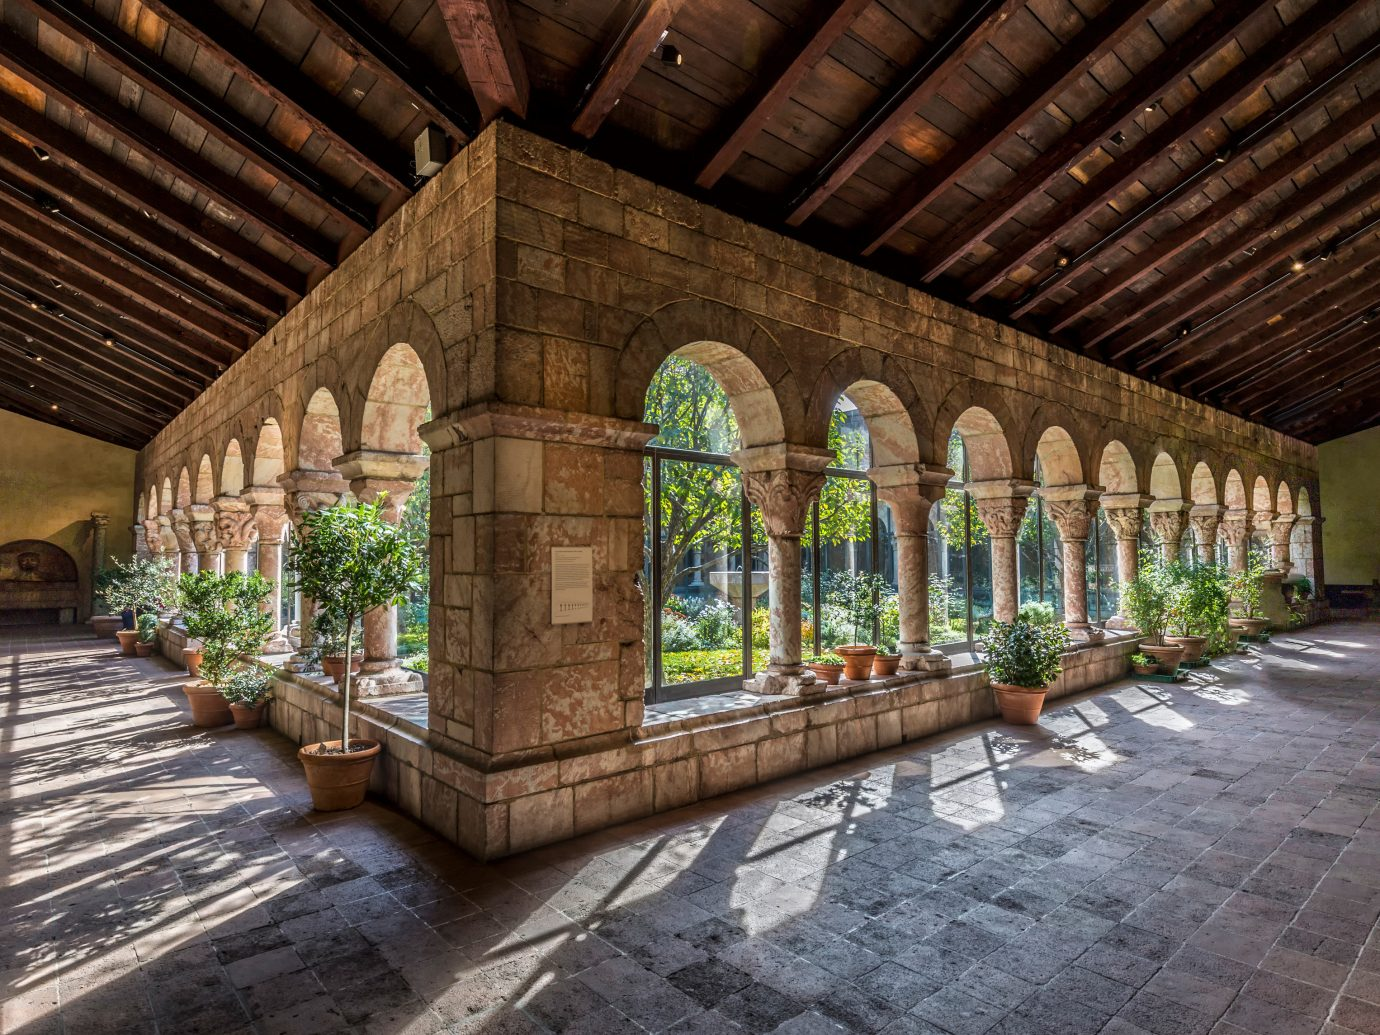 Hotels Jetsetter Guides Travel Tips Trip Ideas ground building arch historic site hacienda Courtyard arcade outdoor structure column window medieval architecture stock photography court stone colonnade